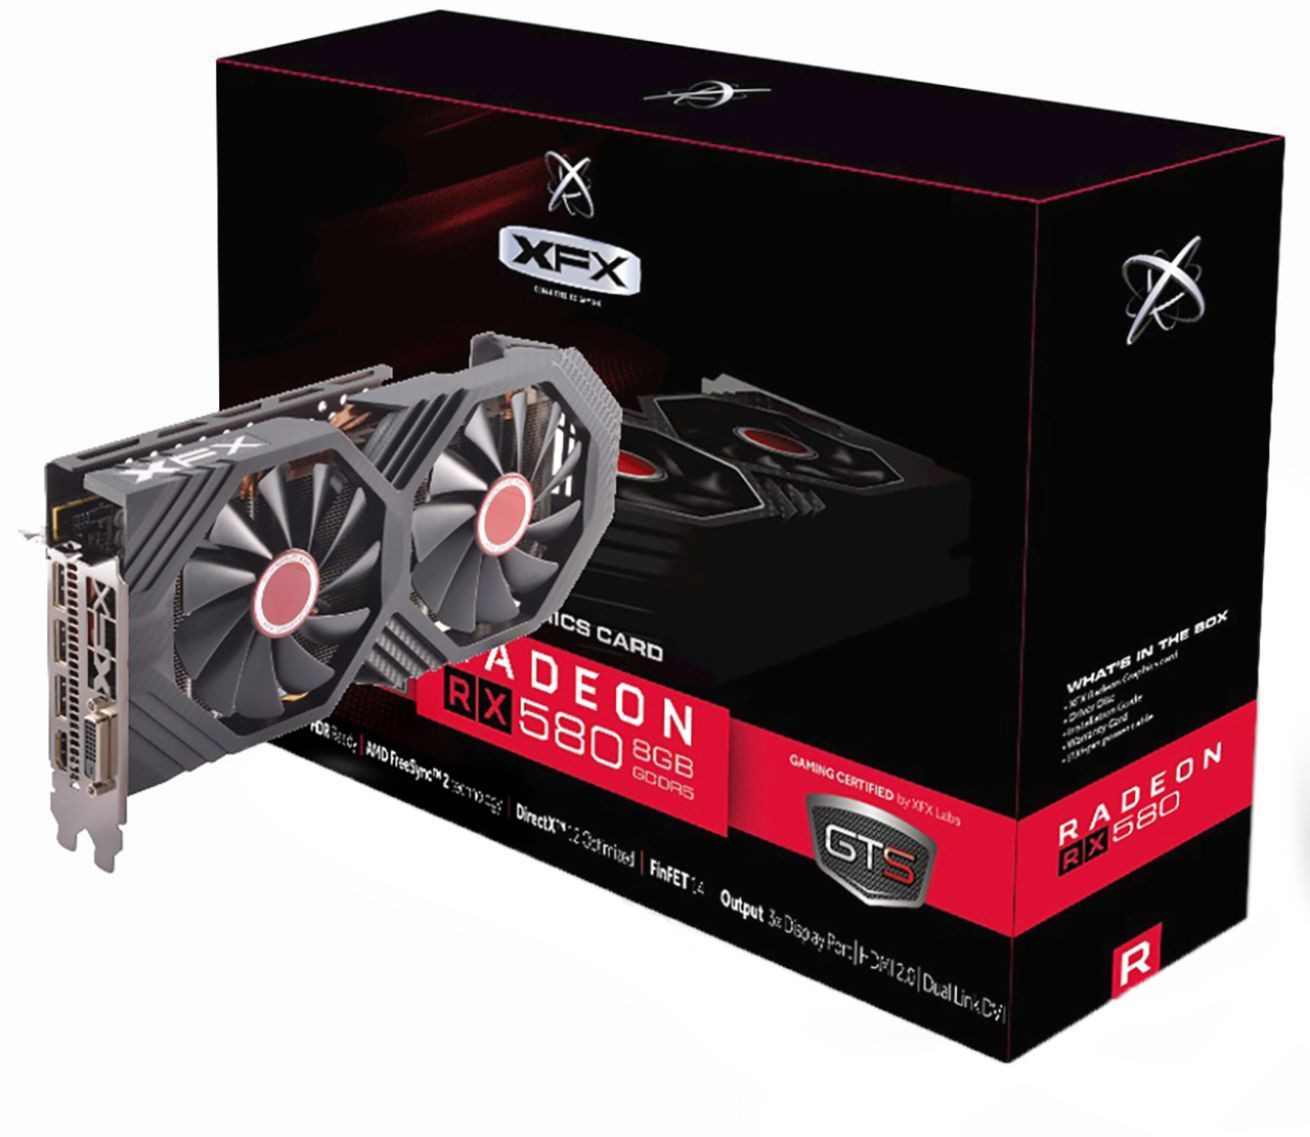 NEW XFX AMD Radeon RX 570 Black Edition 8GB GDDR5 Graphics Card - Fast Shipping